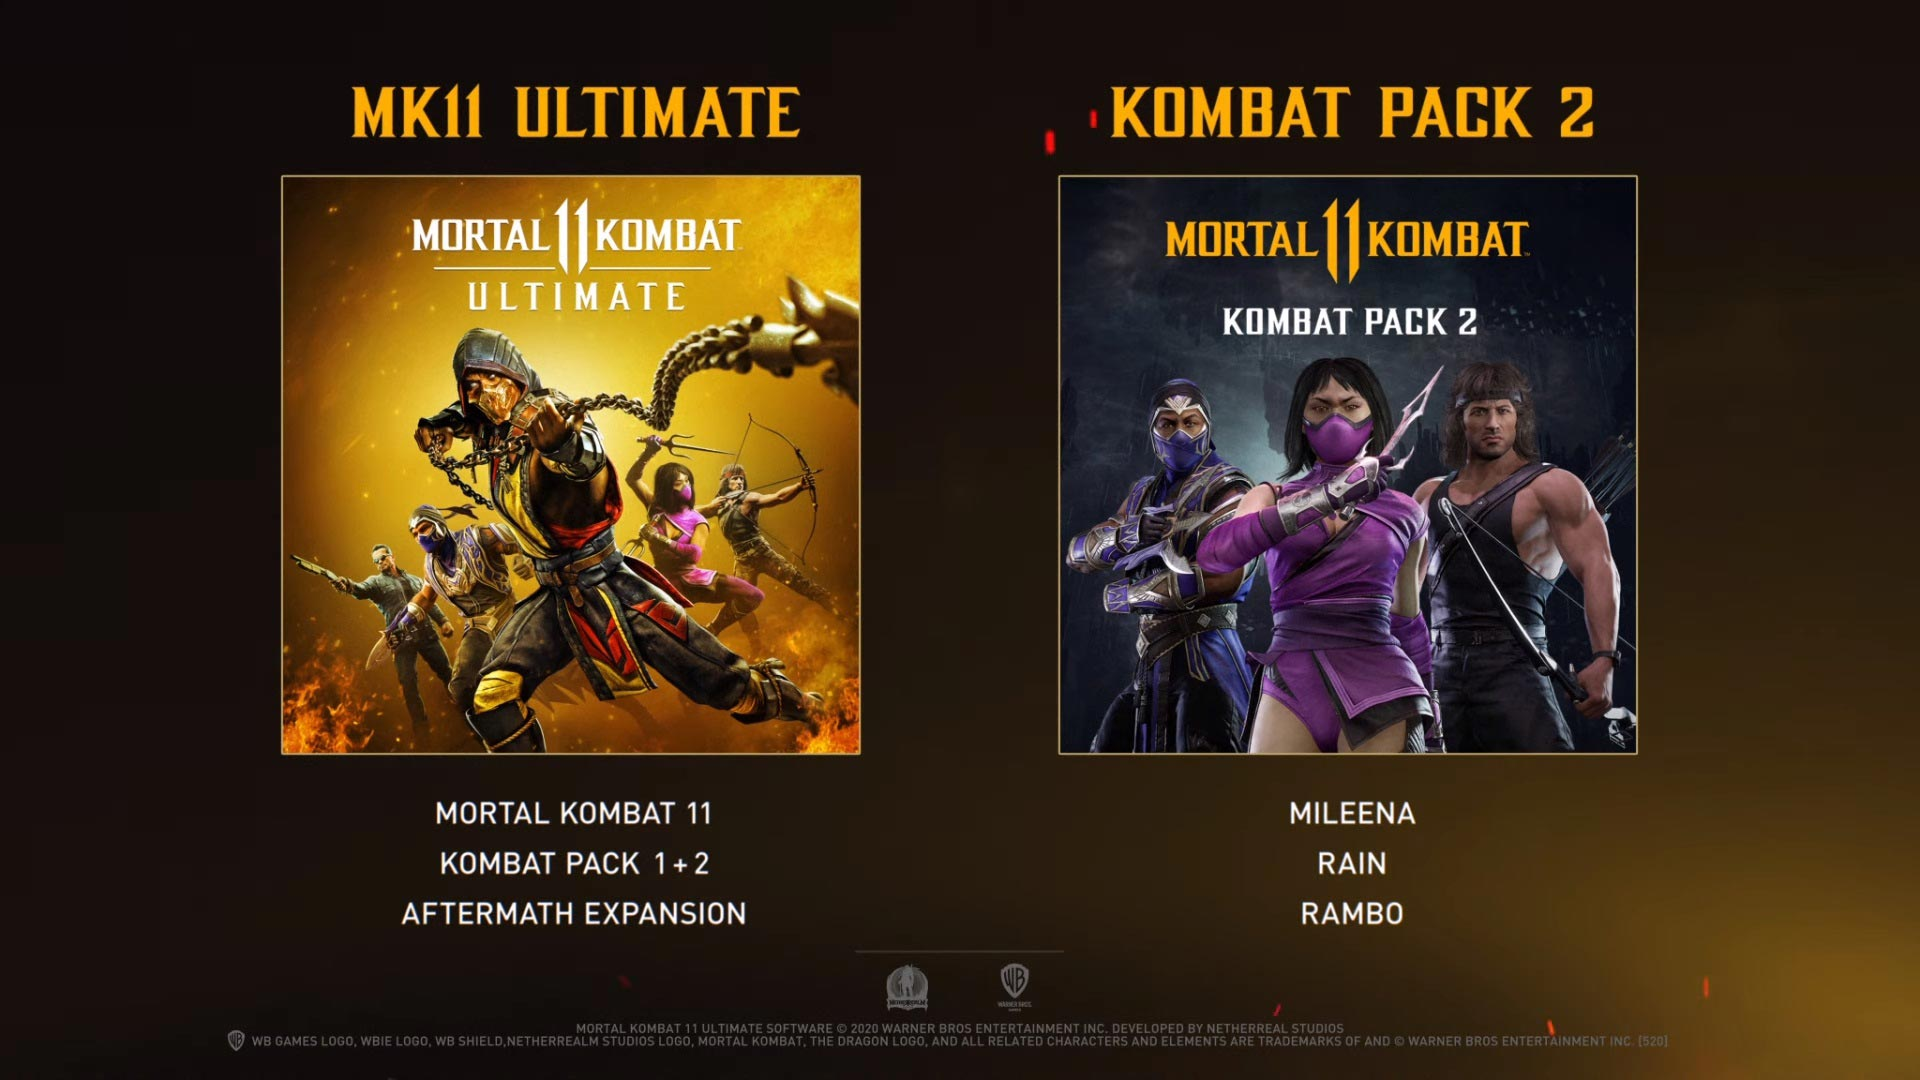 Mortal Kombat 11: Ultimate 12 out of 14 image gallery